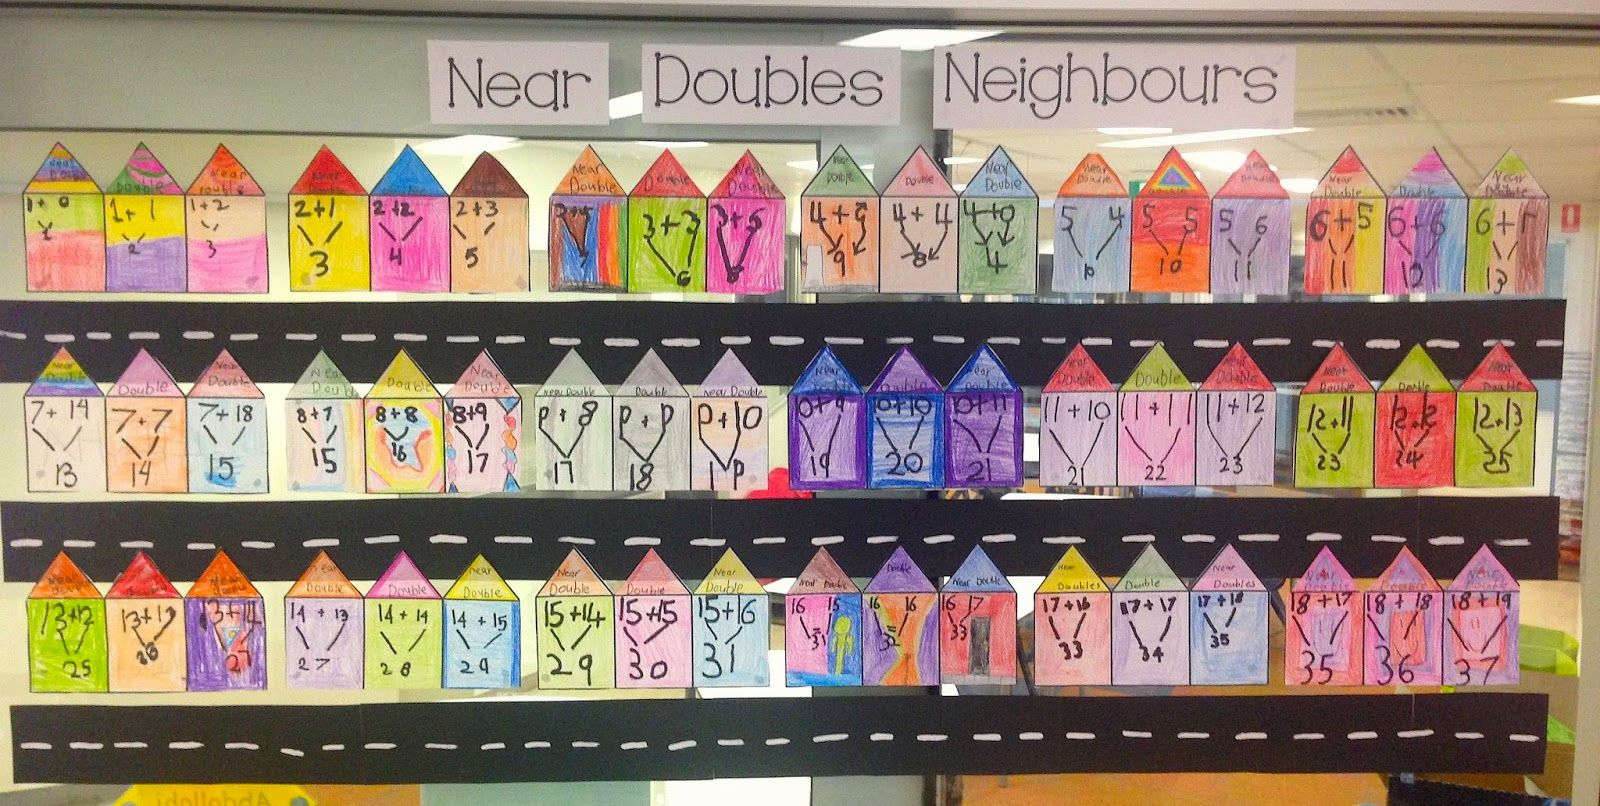 A Great Maths Display Based On Near Doubles Maths Facts